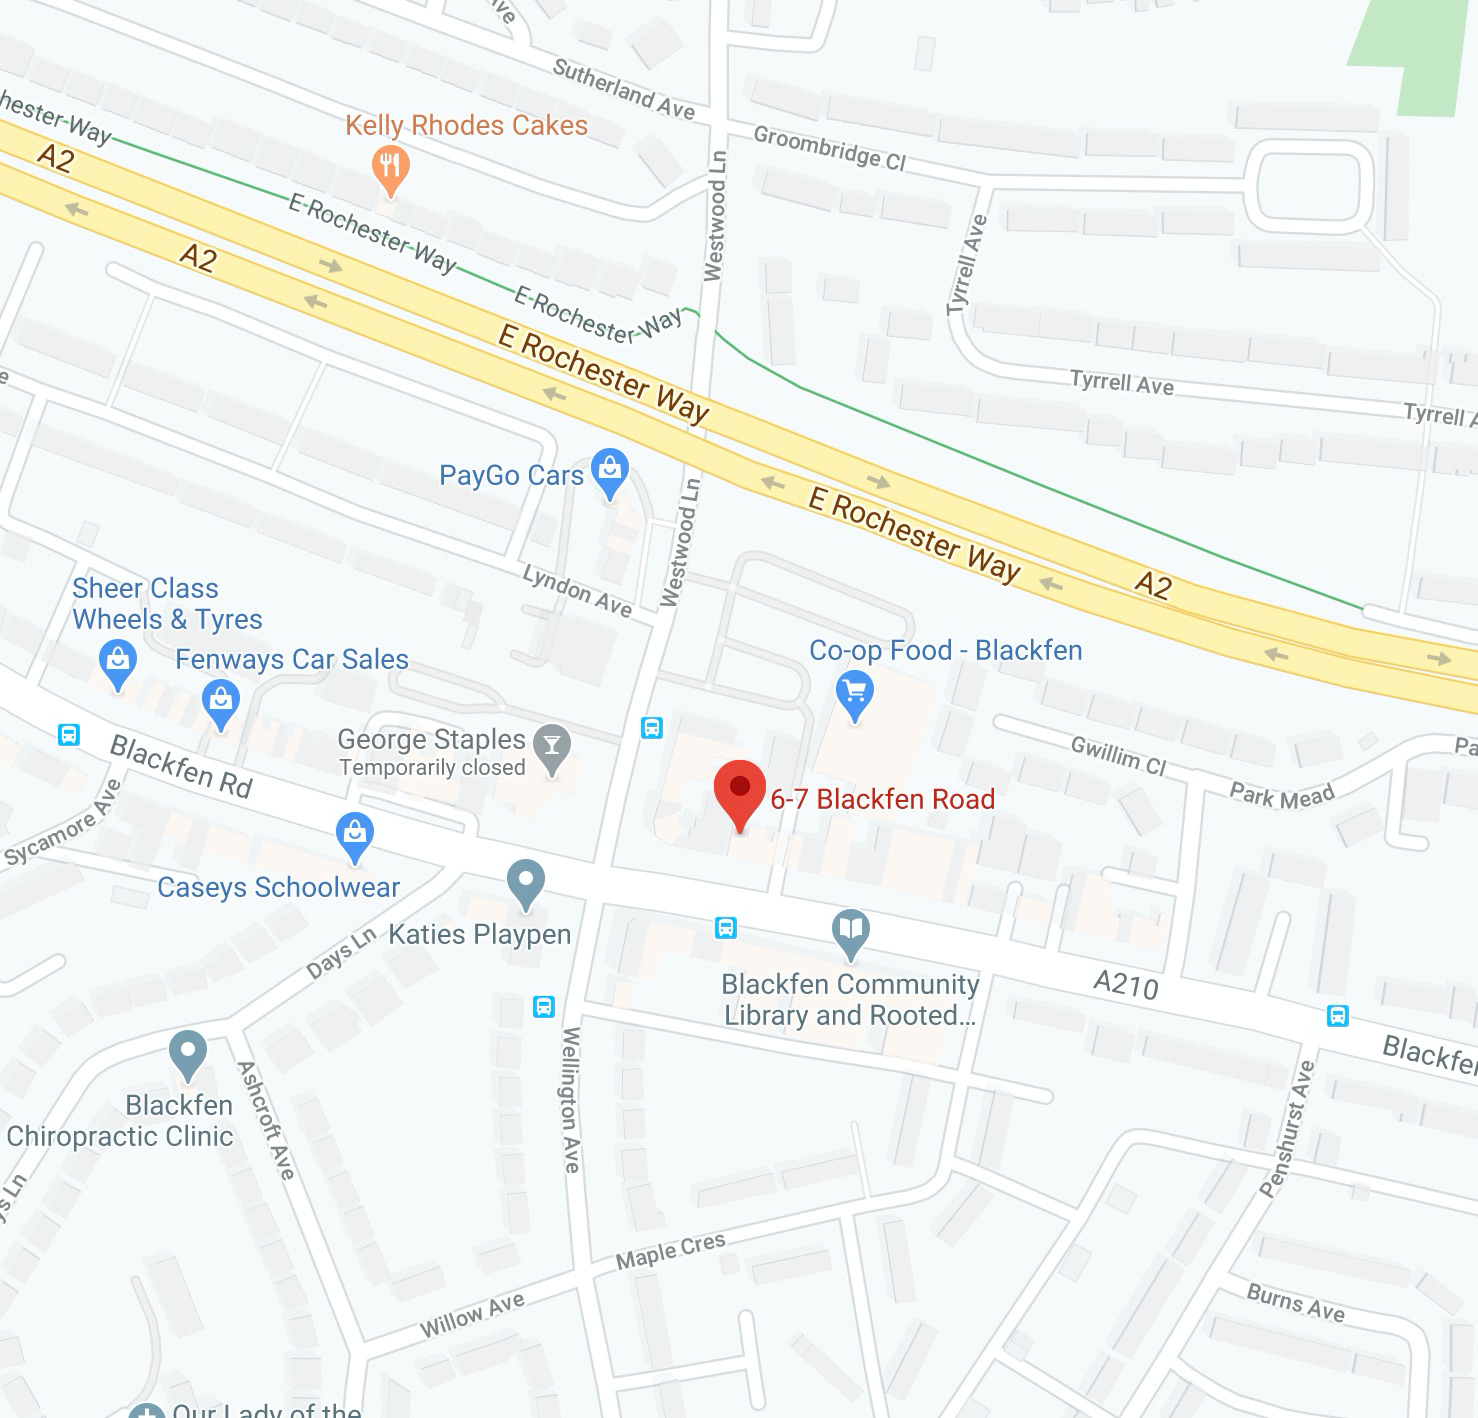 Map location of Blackfen Community Library